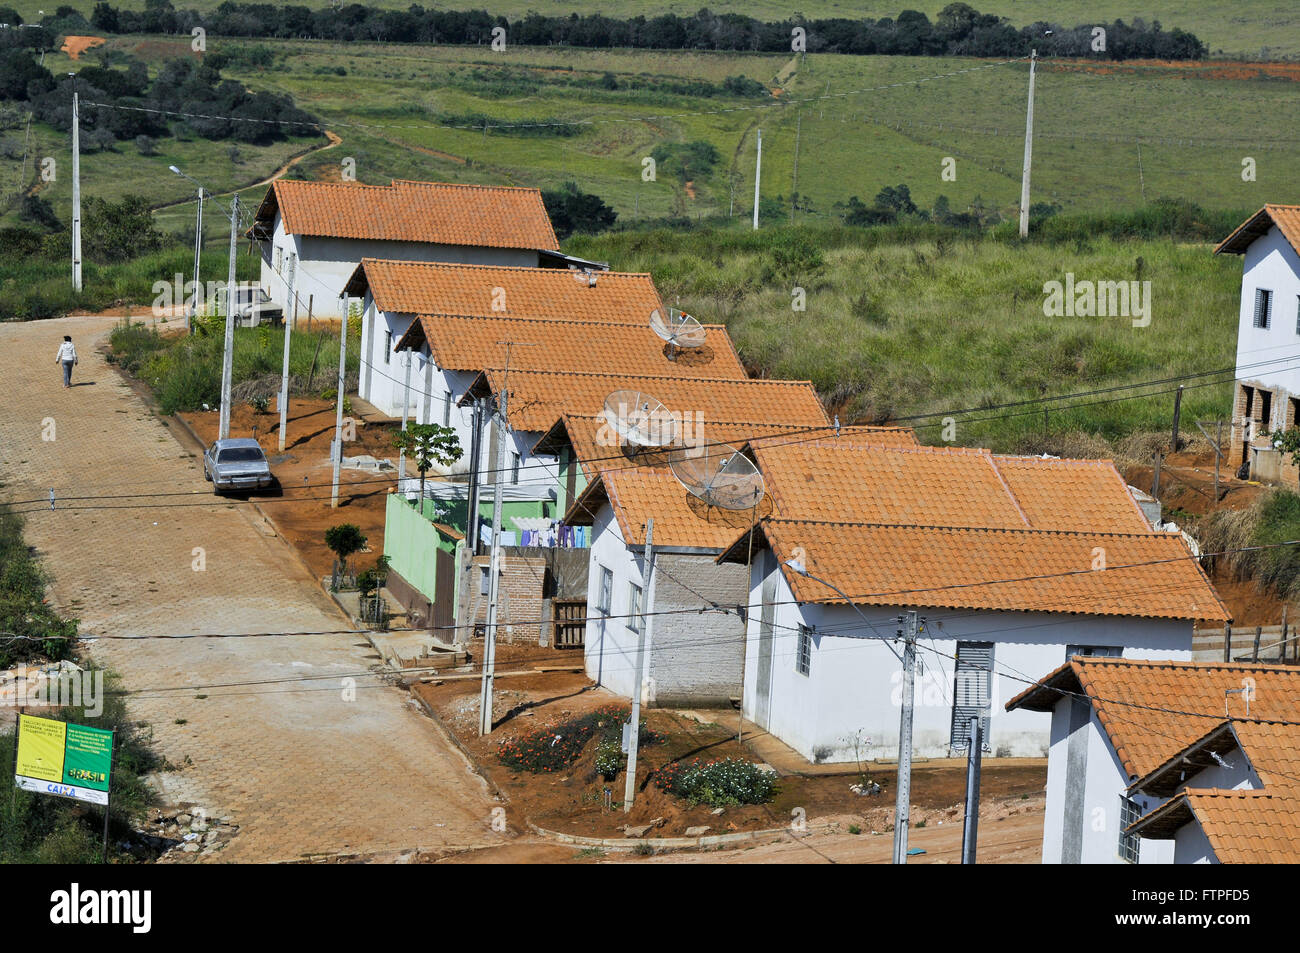 Housing affordable housing in the south of Minas Gerais - Stock Image